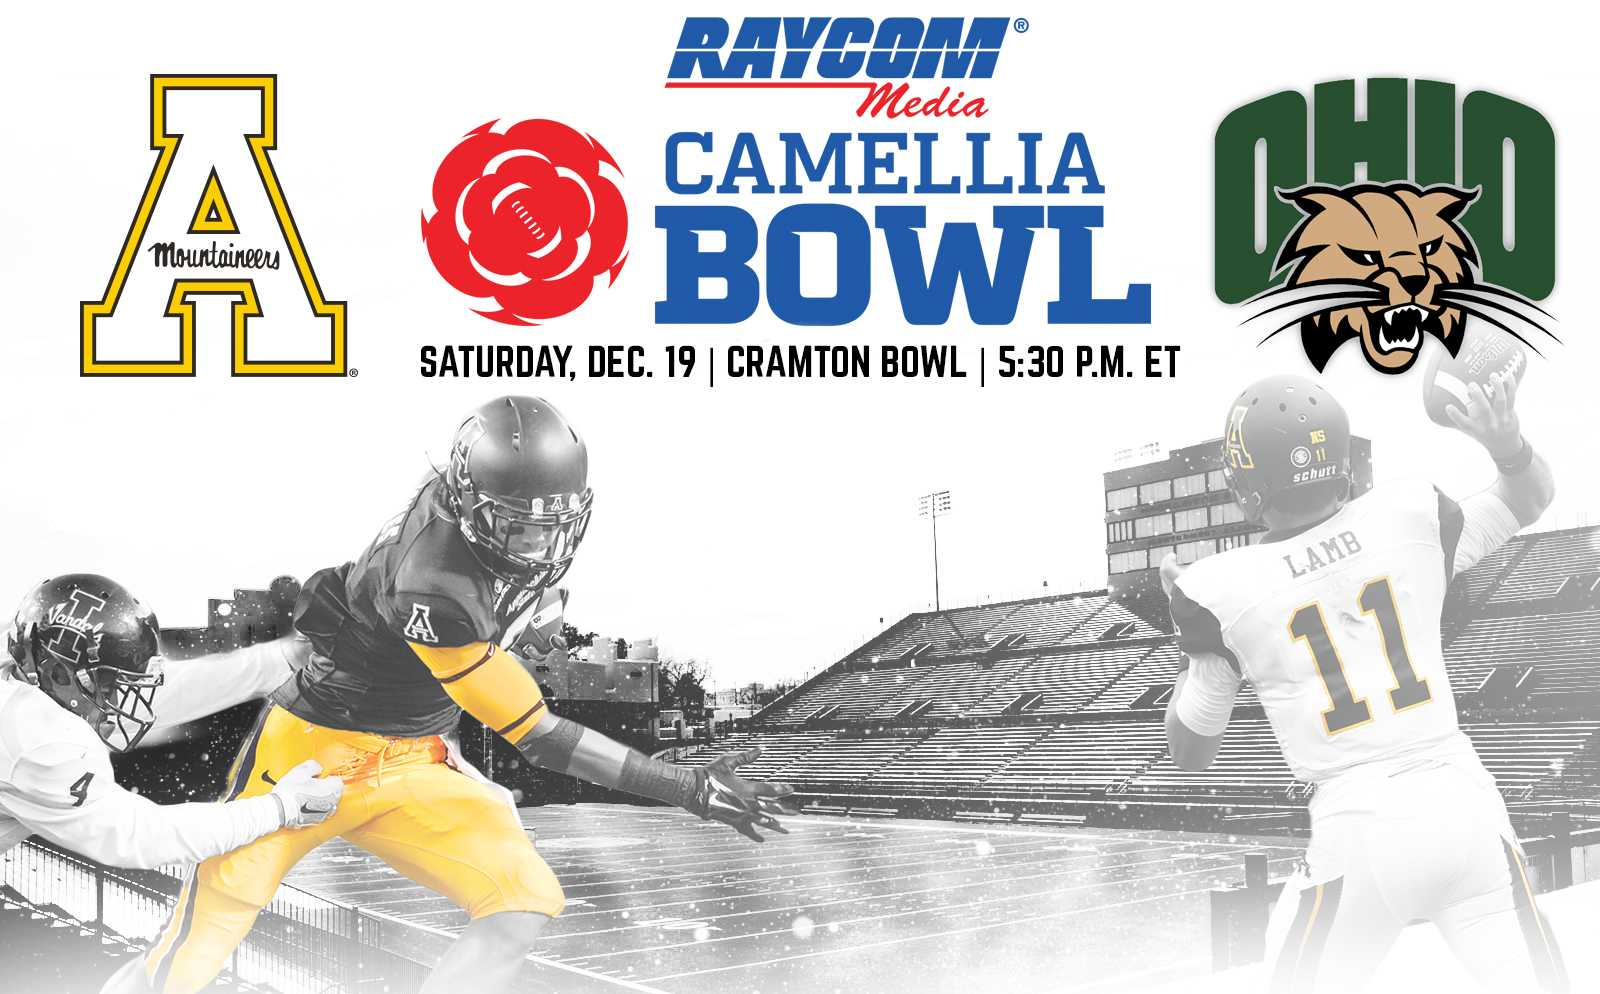 App State to play Ohio in the Camellia Bowl